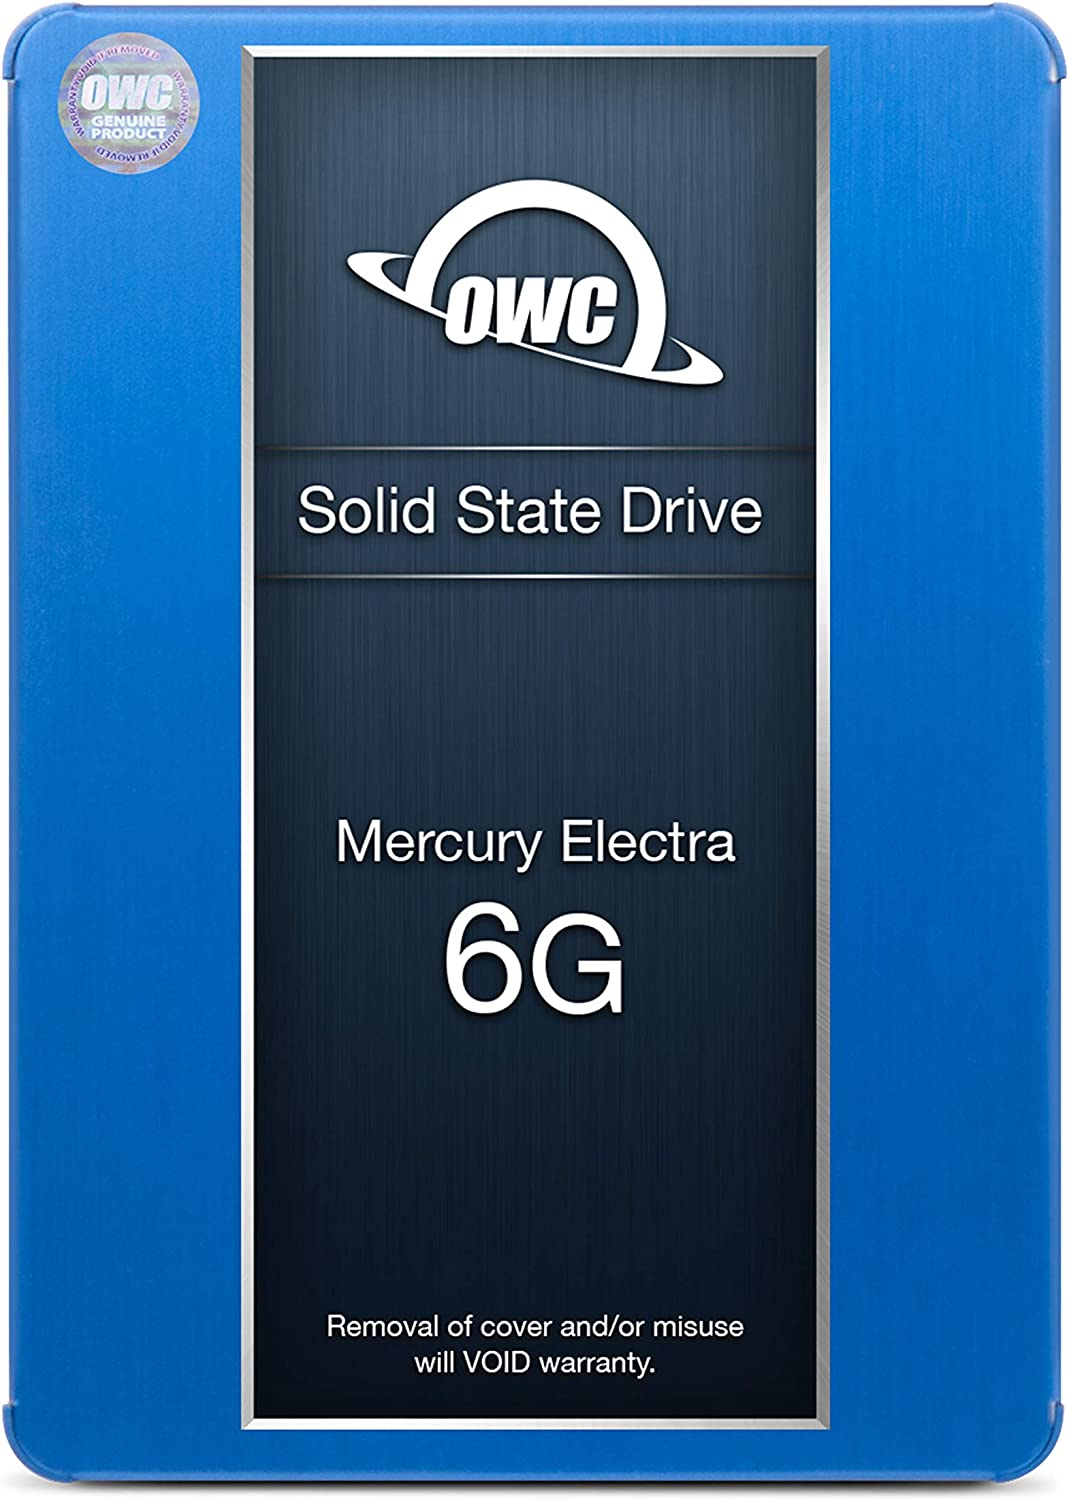 OWC 500GB Mercury Electra 6G SSD 2.5 Serial-ATA 7mm Solid State Drive